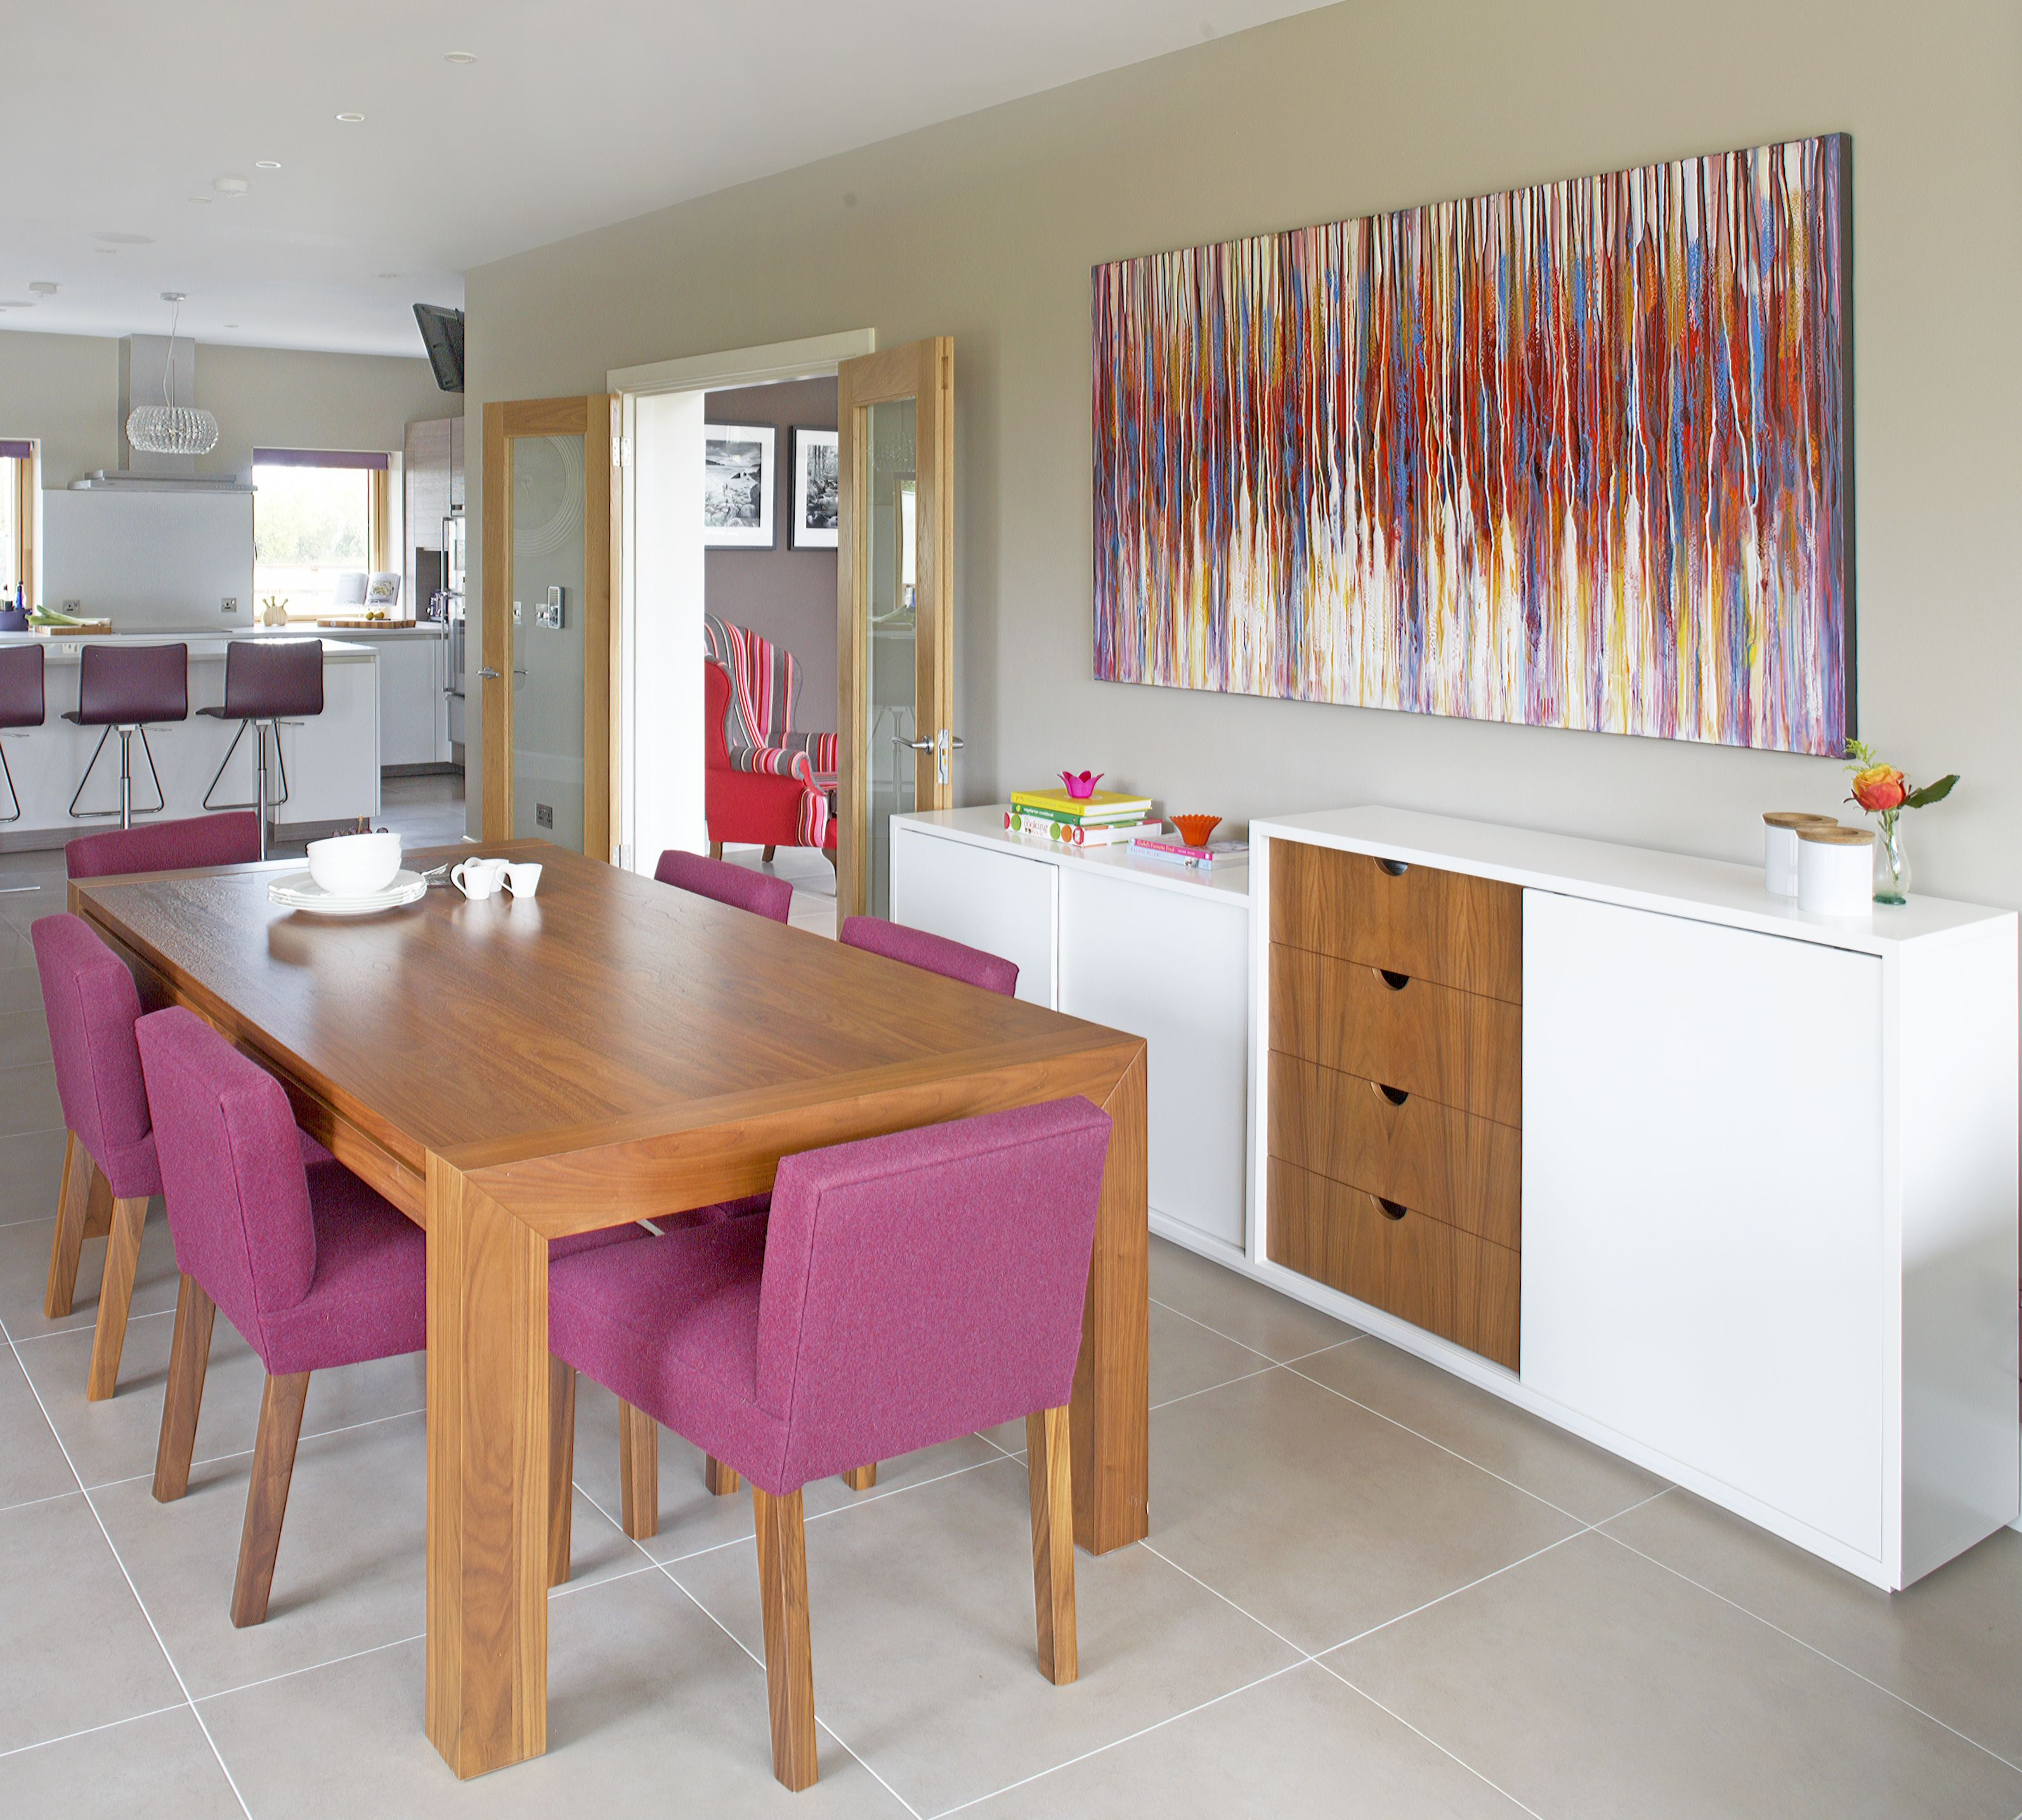 Dining area open plan living residential bedroom house